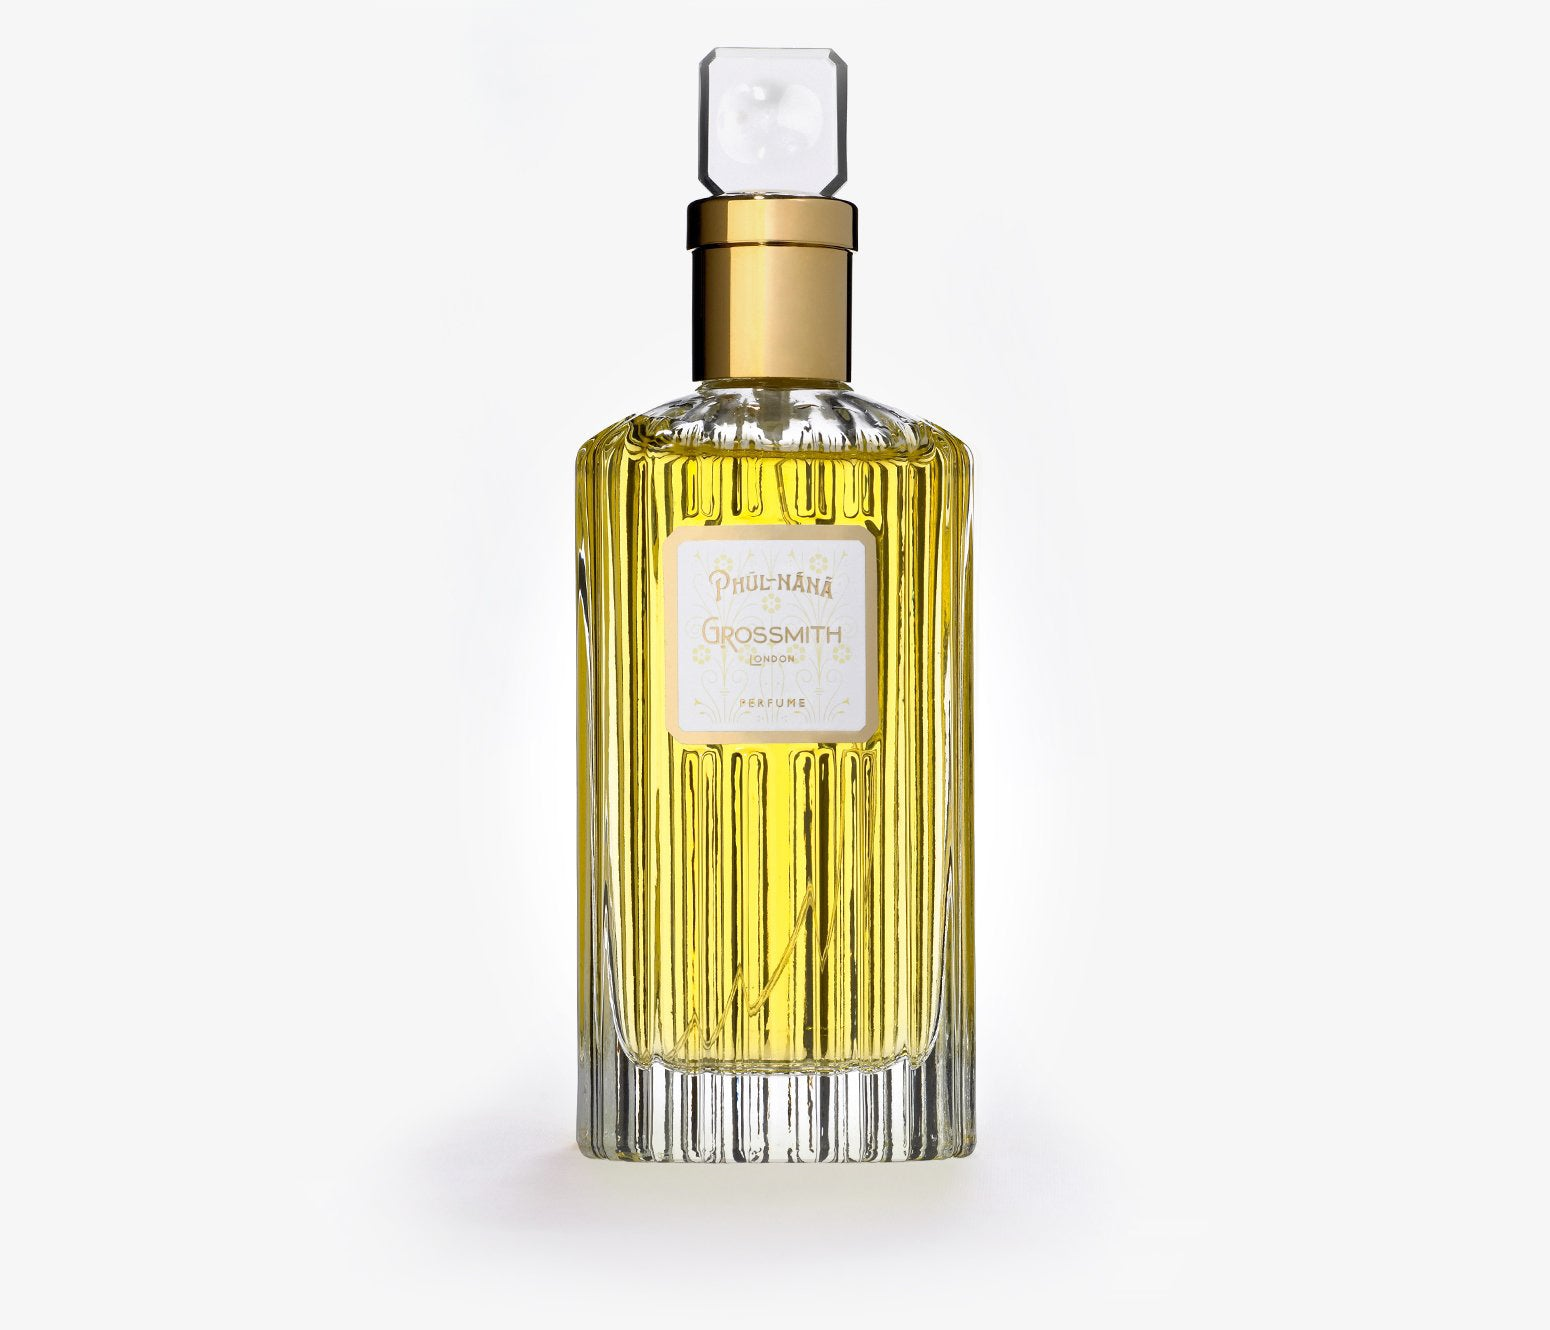 Grossmith London - Phul-Nana - 50ml - FMZ8137 - product image - Fragrance - Les Senteurs